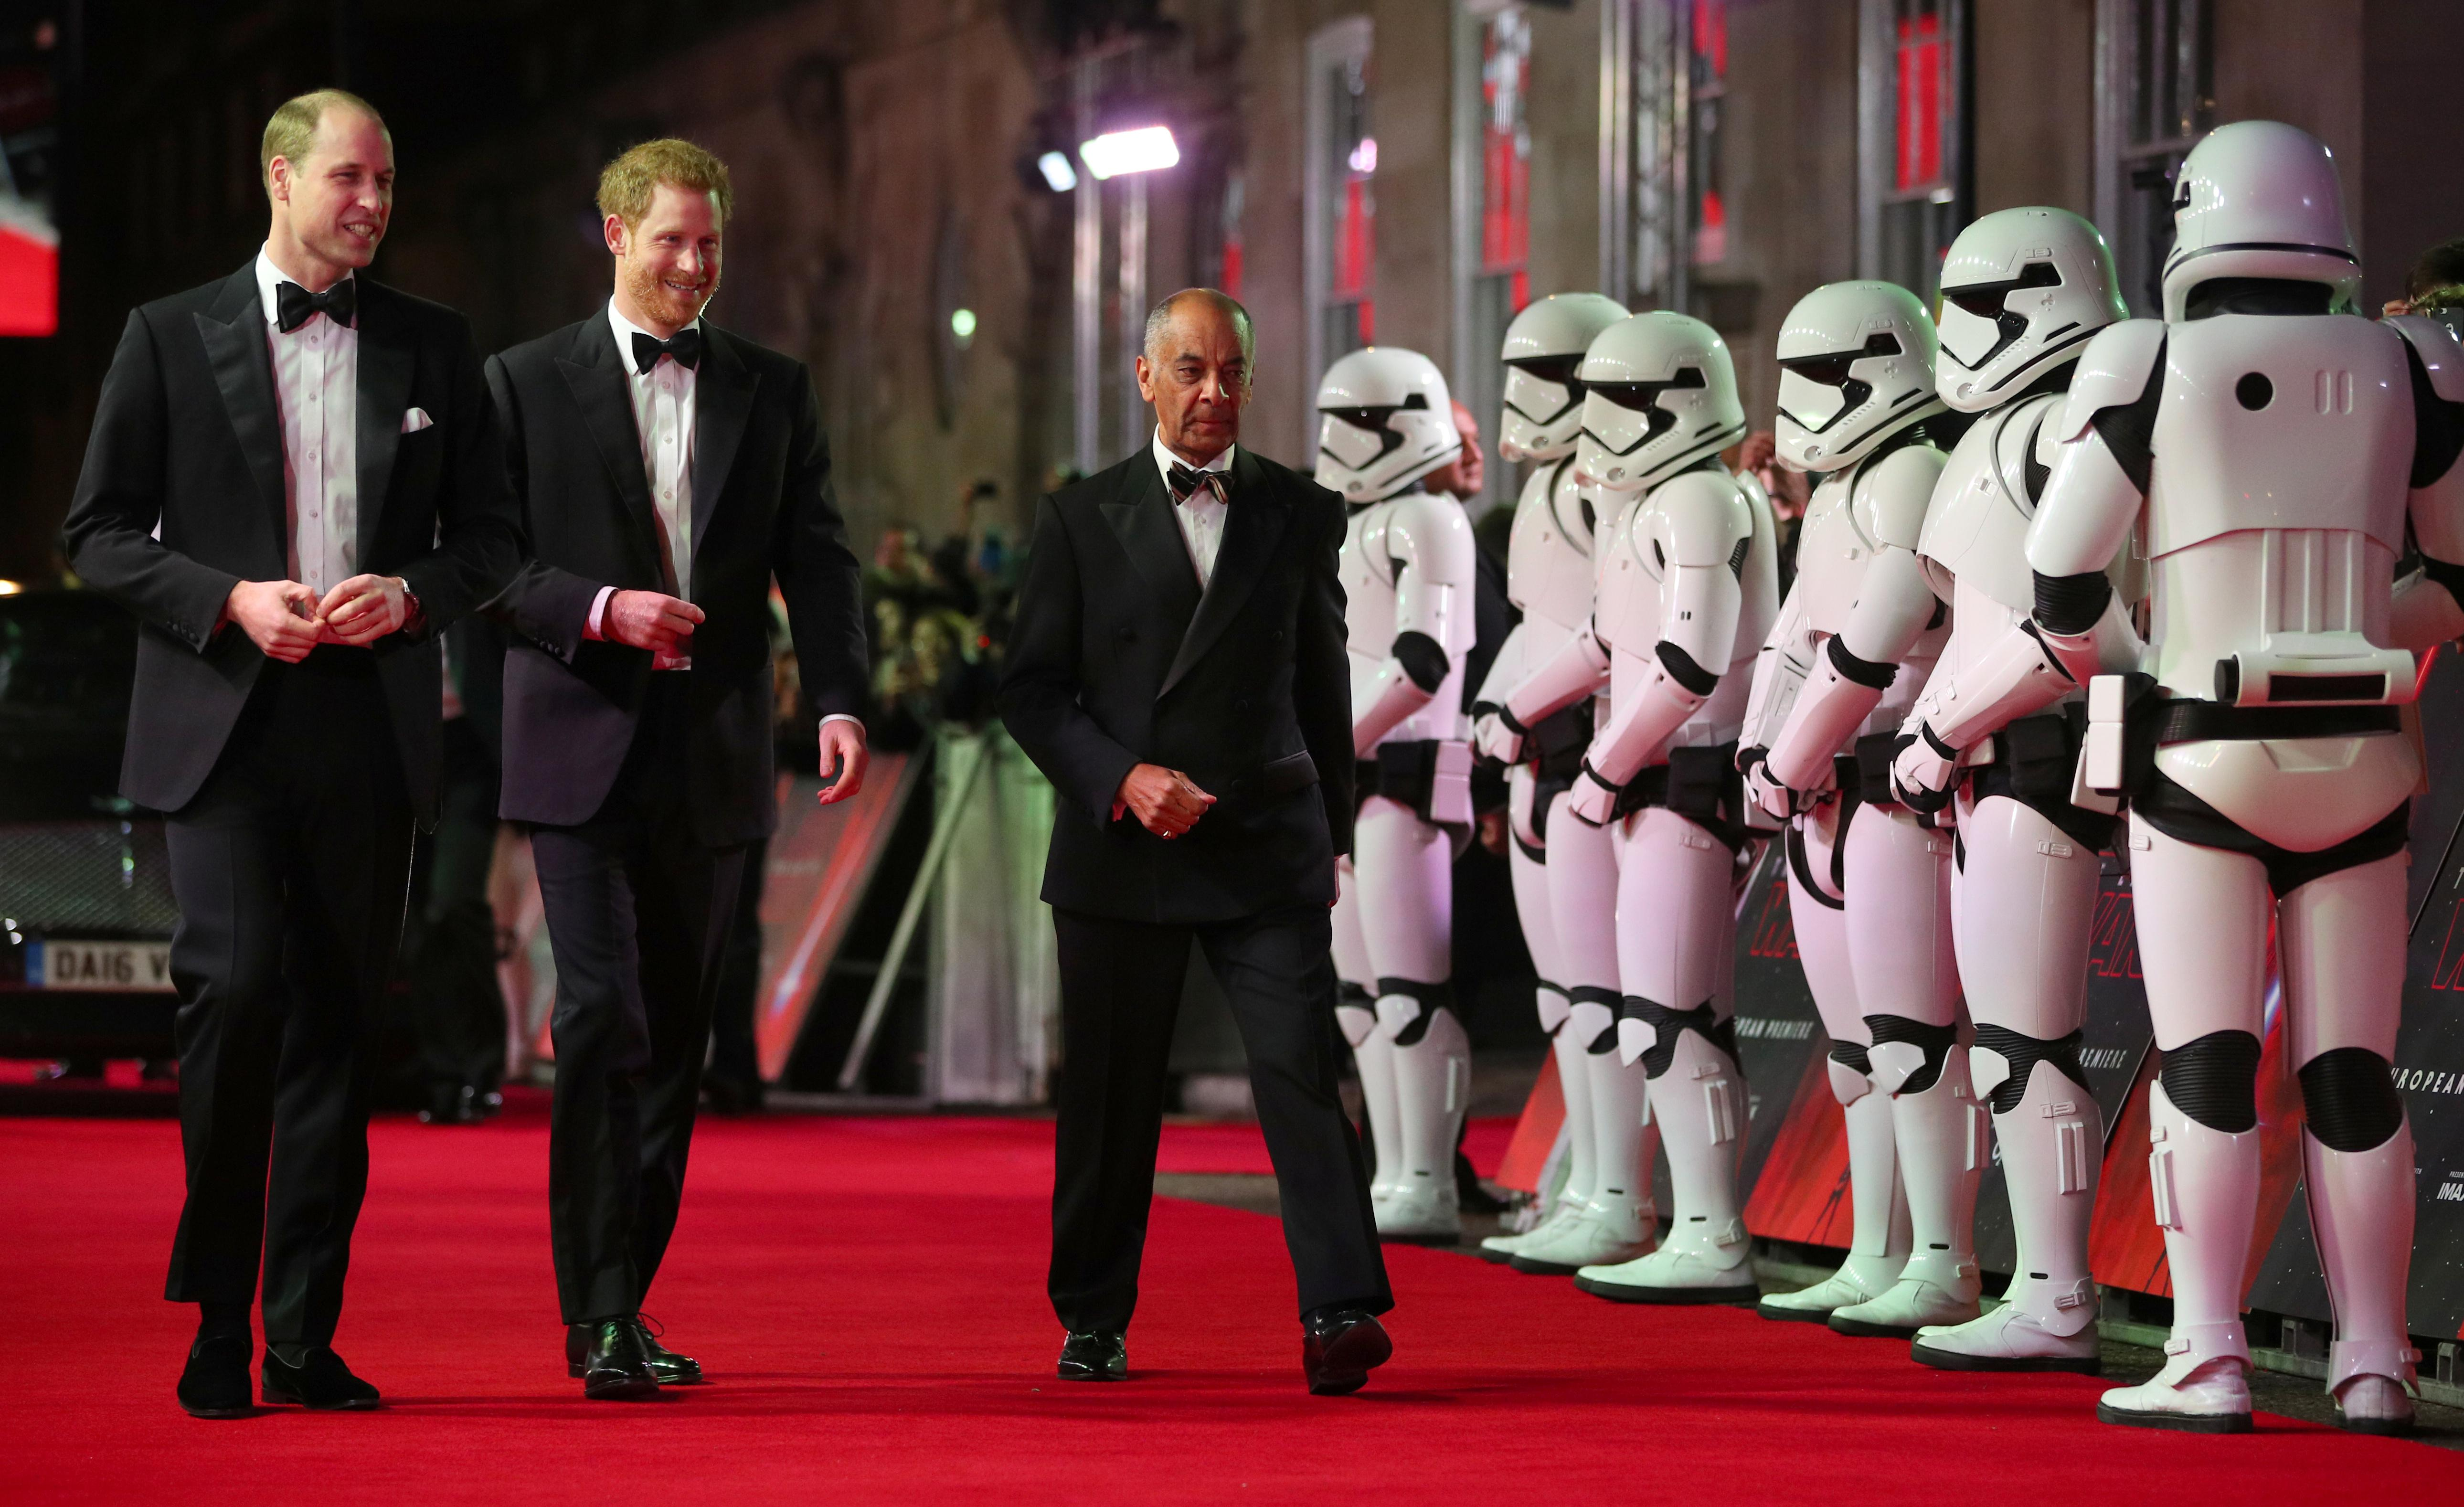 Britain's Prince William and Prince Harry, arrive for the European Premiere of 'Star Wars: The Last Jedi', at the Royal Albert Hall in central London, Britain December 12, 2017. Hannah McKay